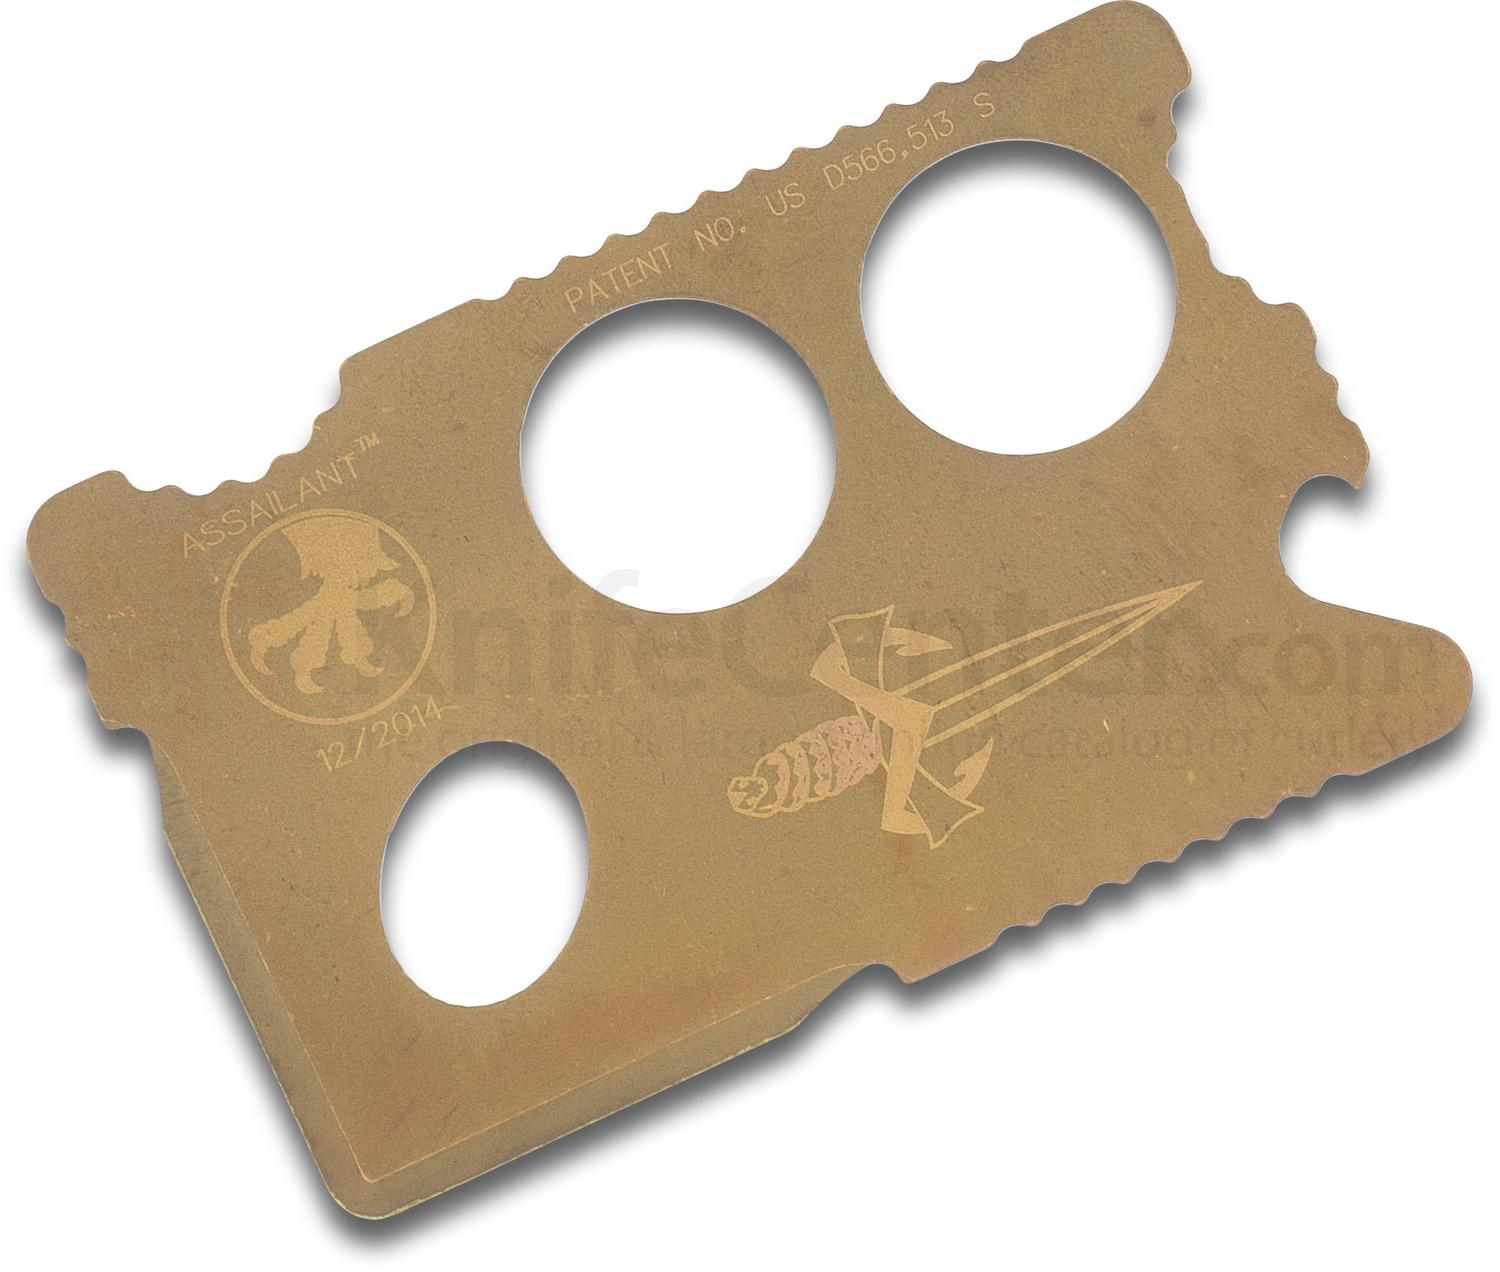 Marfione Custom Knives Assailant Titanium Credit Card Style Knife with Nylon Wallet, Apocalyptic Gold Grahamodized Finish